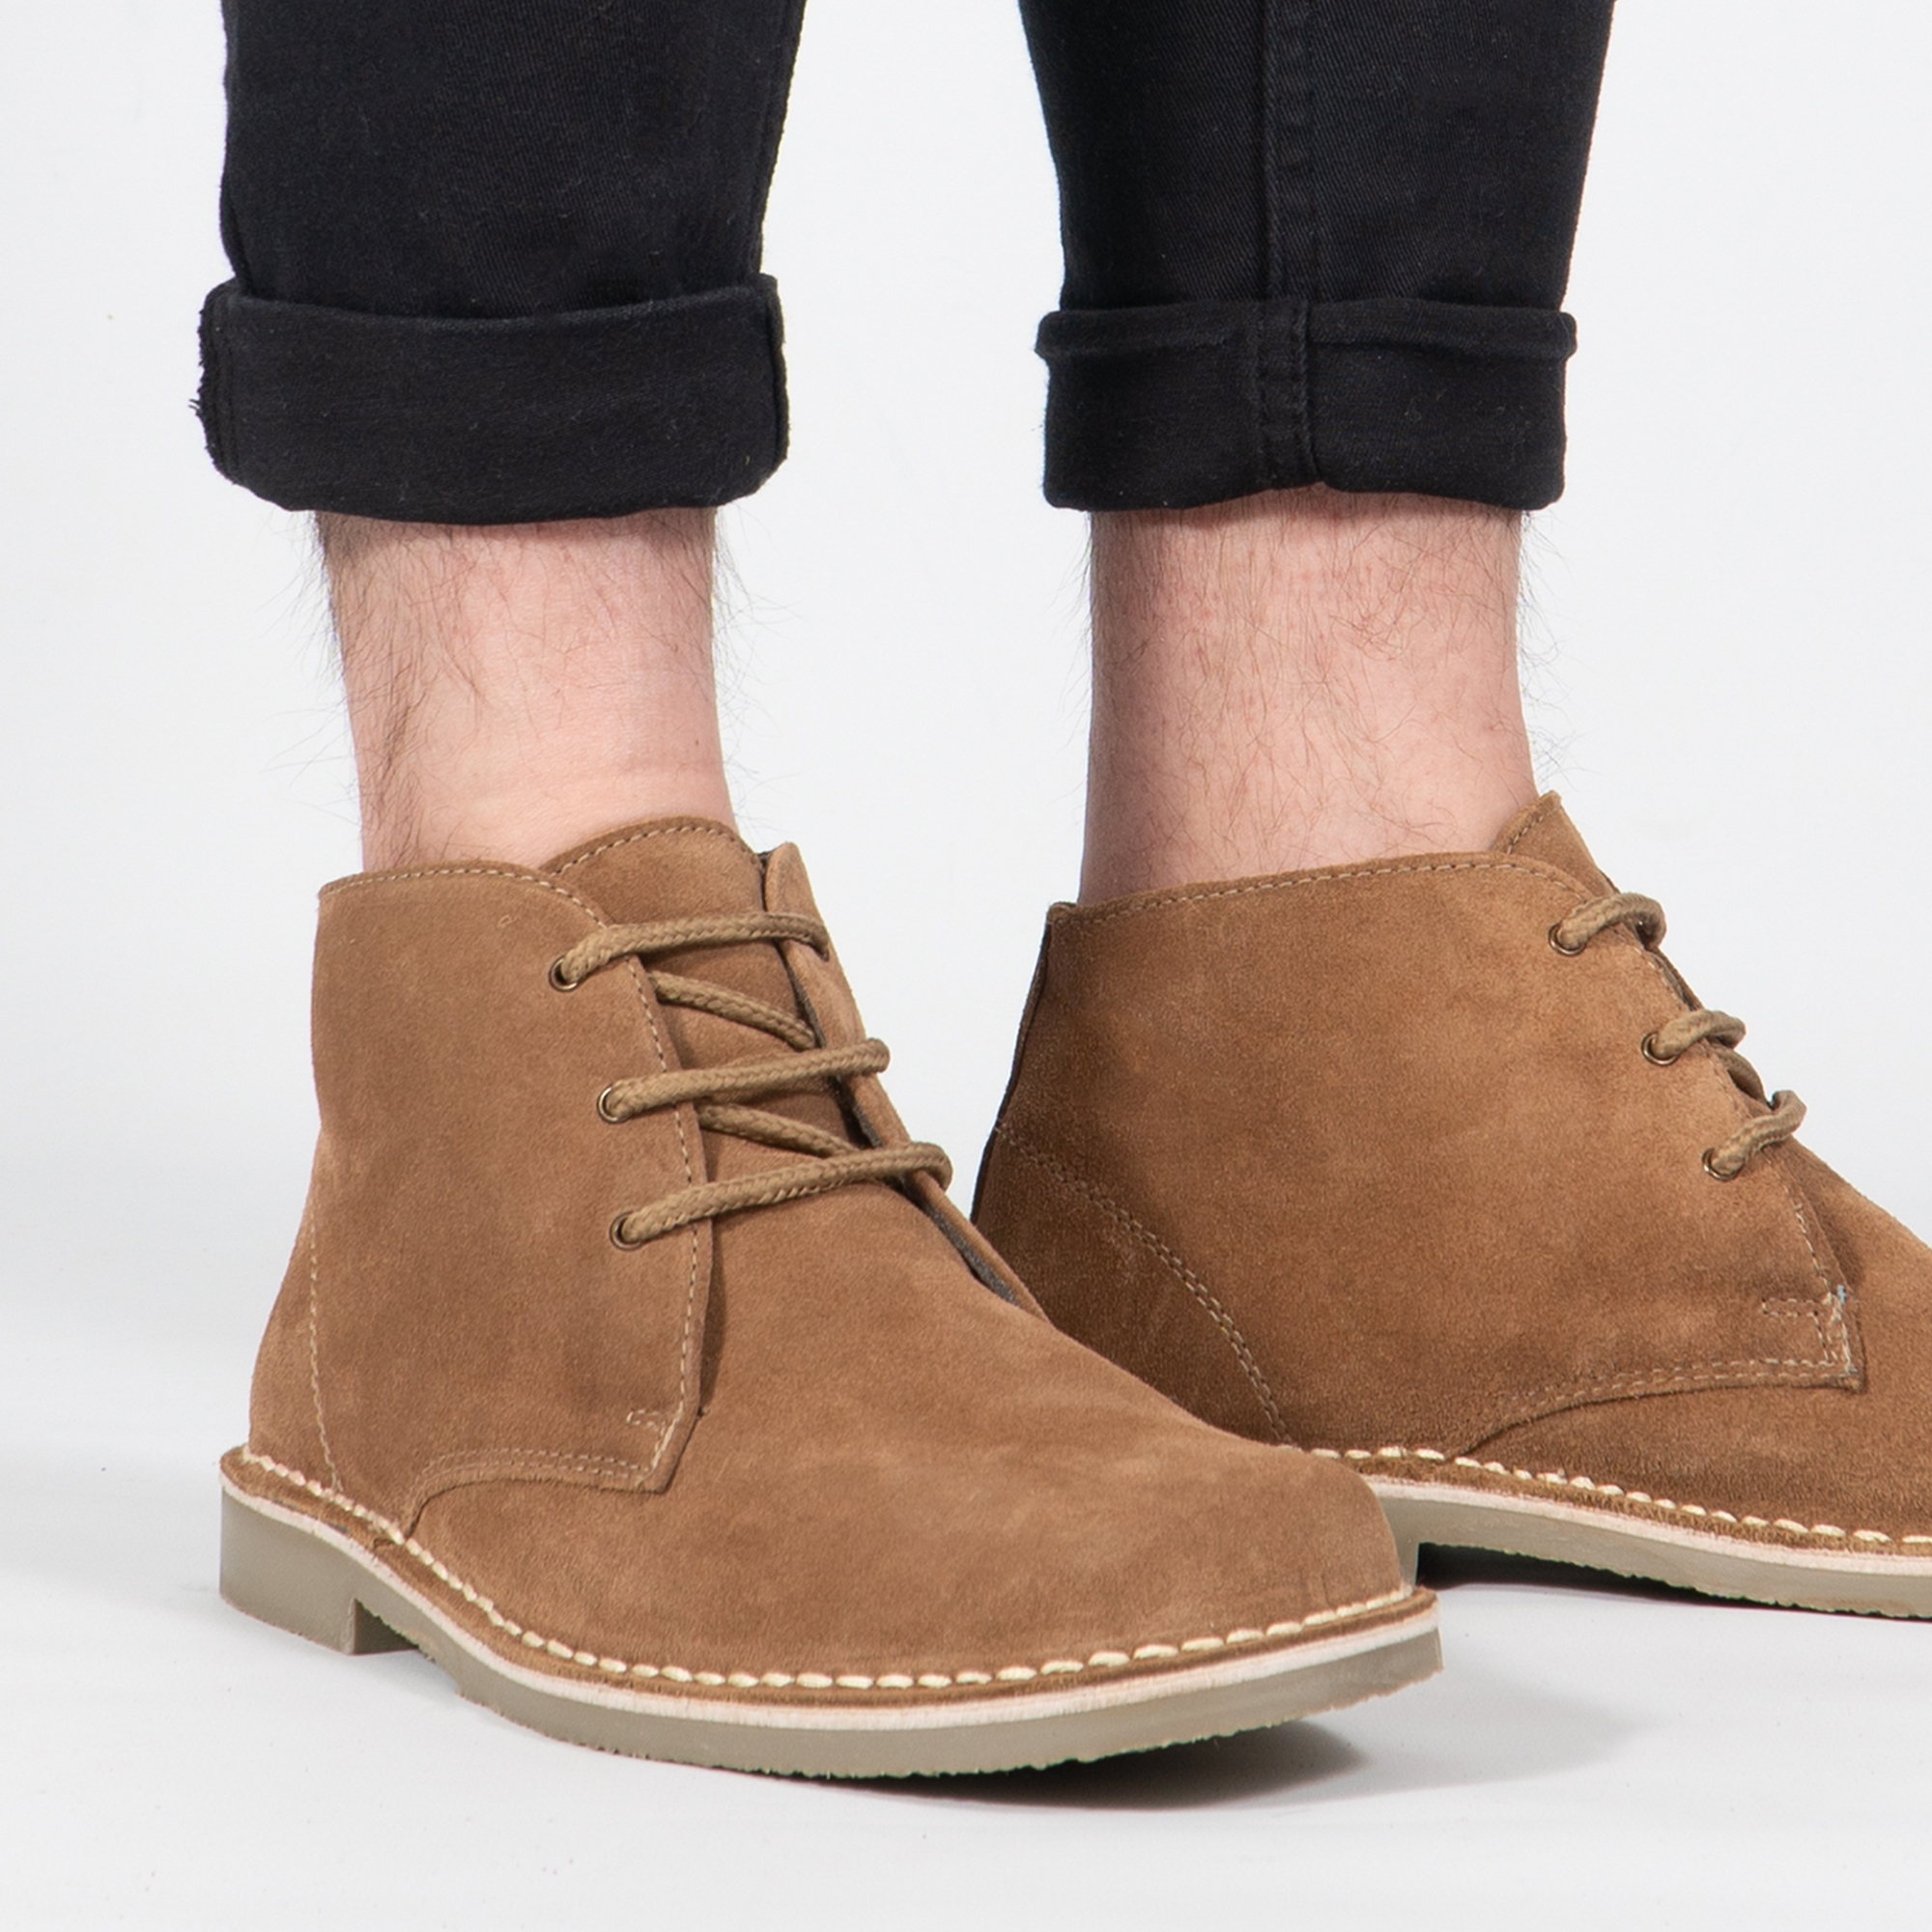 LEONARD Men's Square Toe Suede Leather Desert Boots Sand